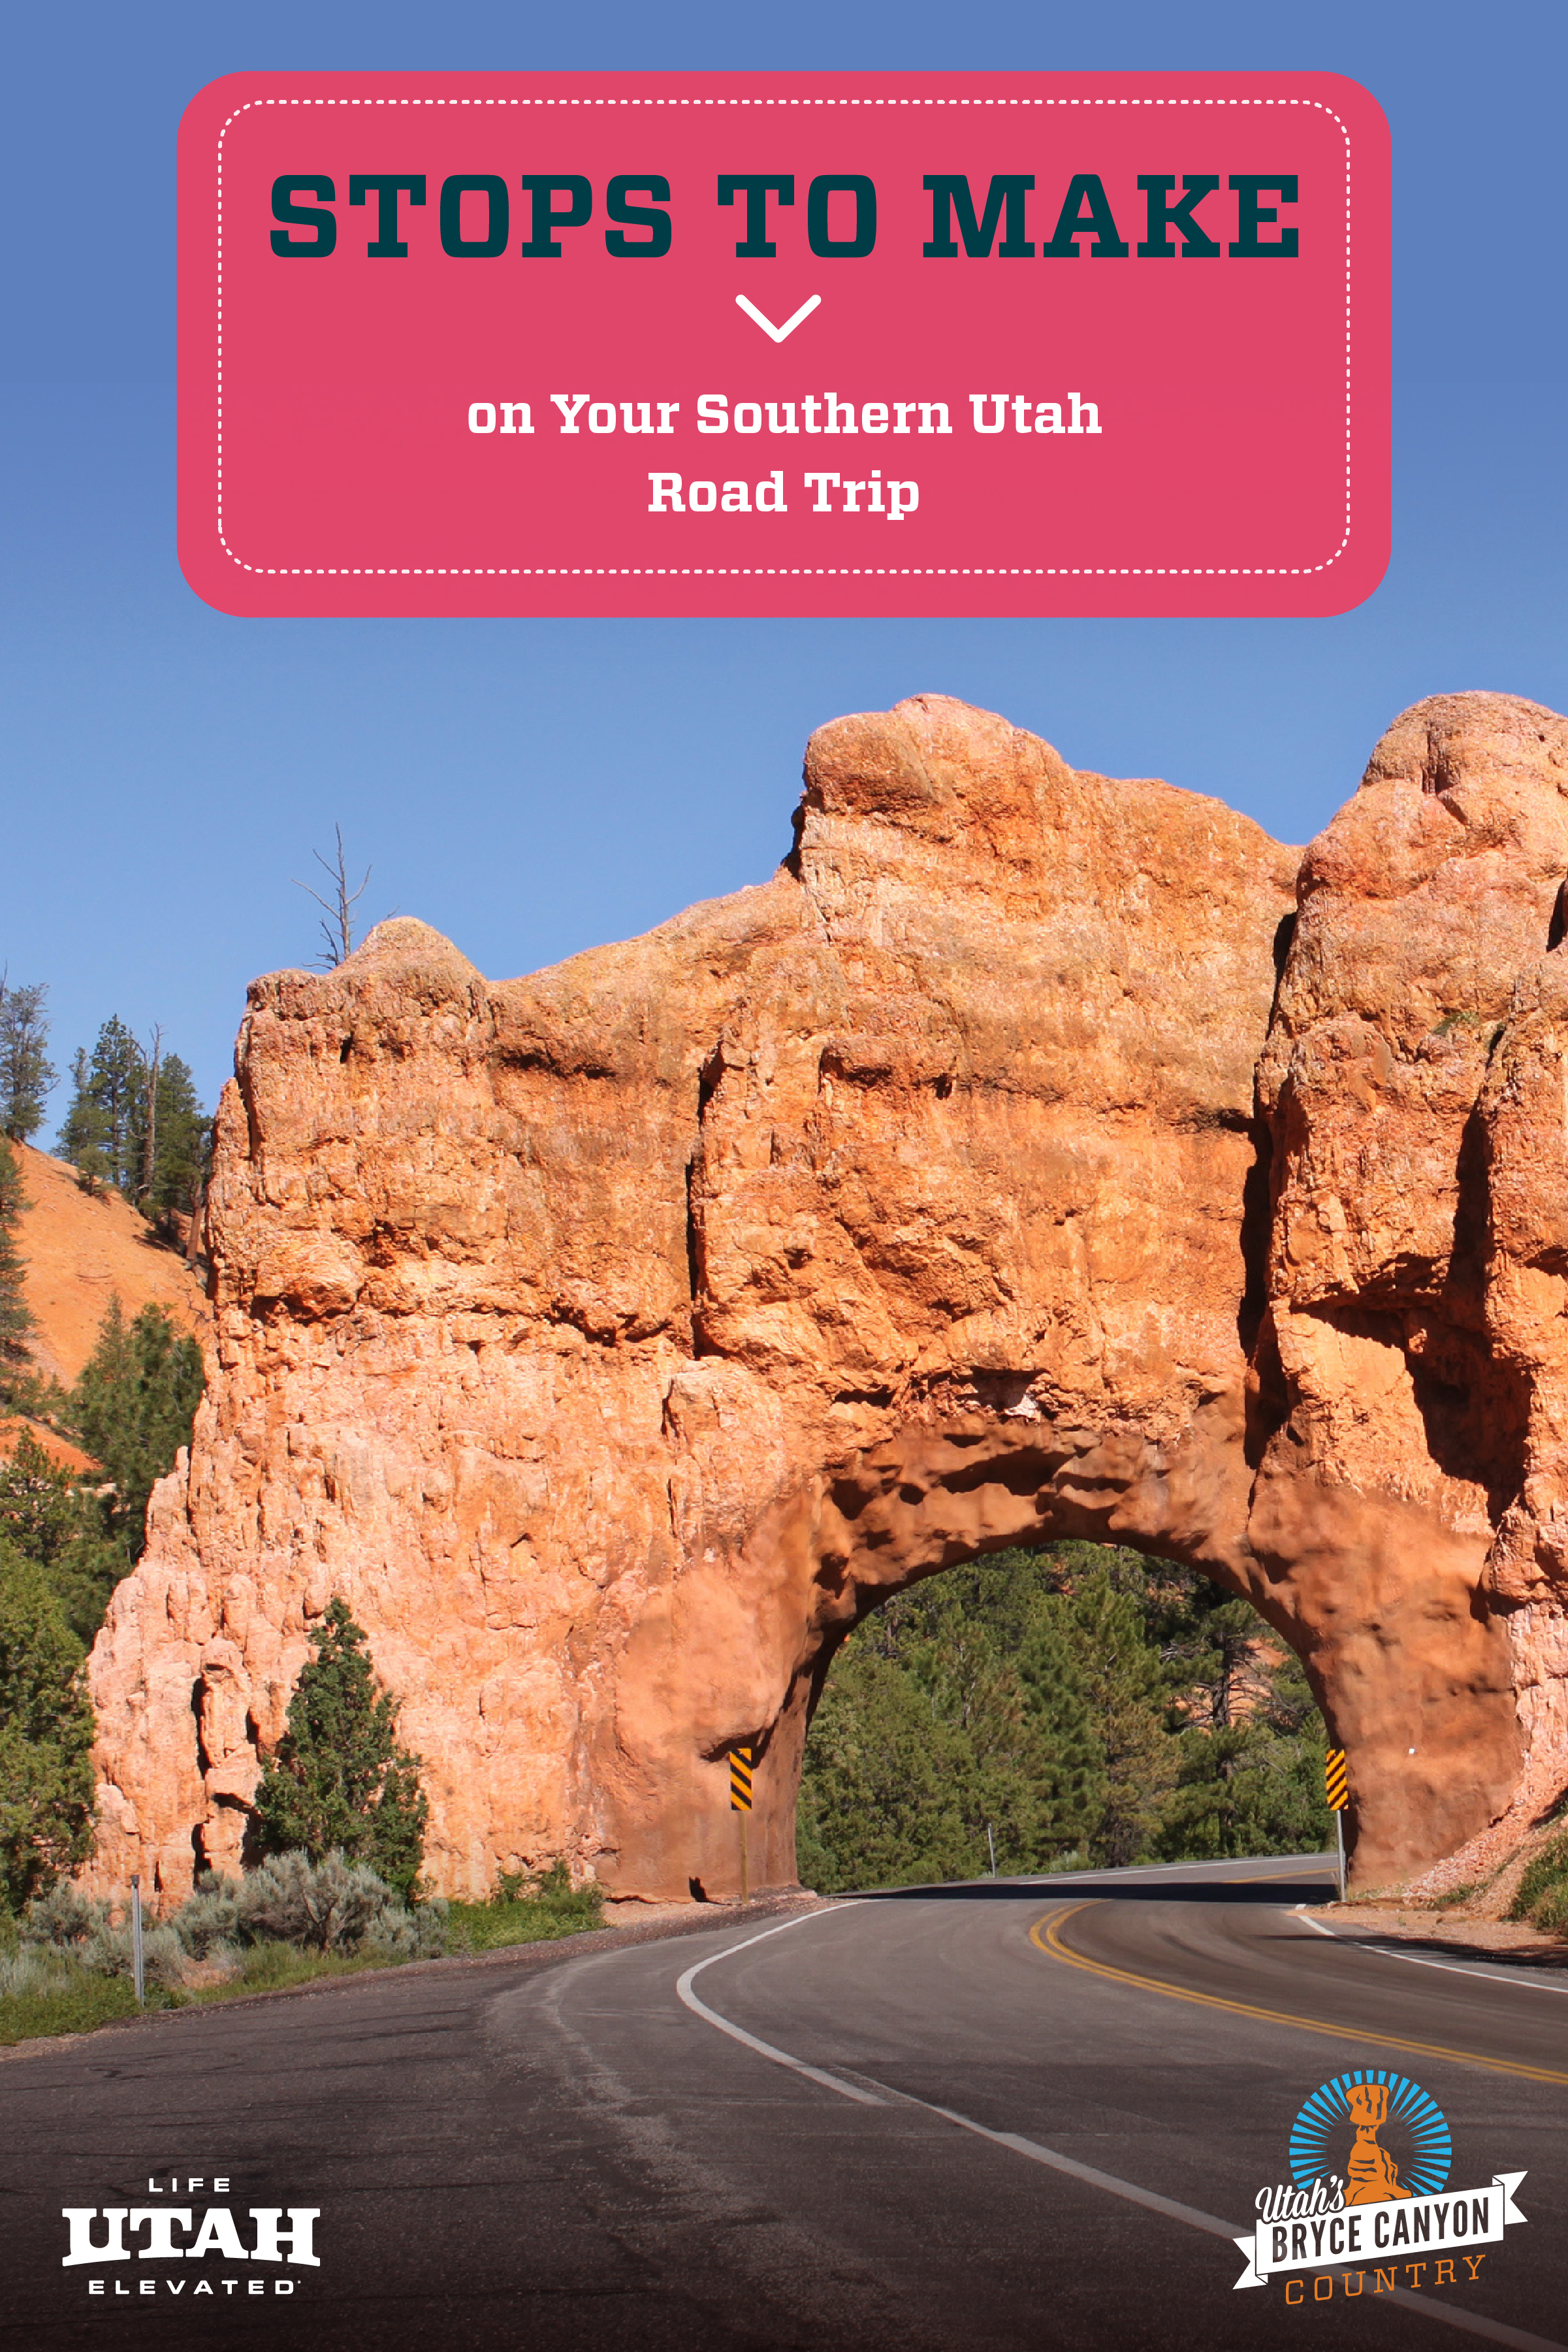 Take three local and scenic byways through Bryce Canyon Country and see multiple national parks, state parks and a national forest along the way! Check out this blog post to see the stops you can make on this Southern Utah road trip to Bryce and Beyond.